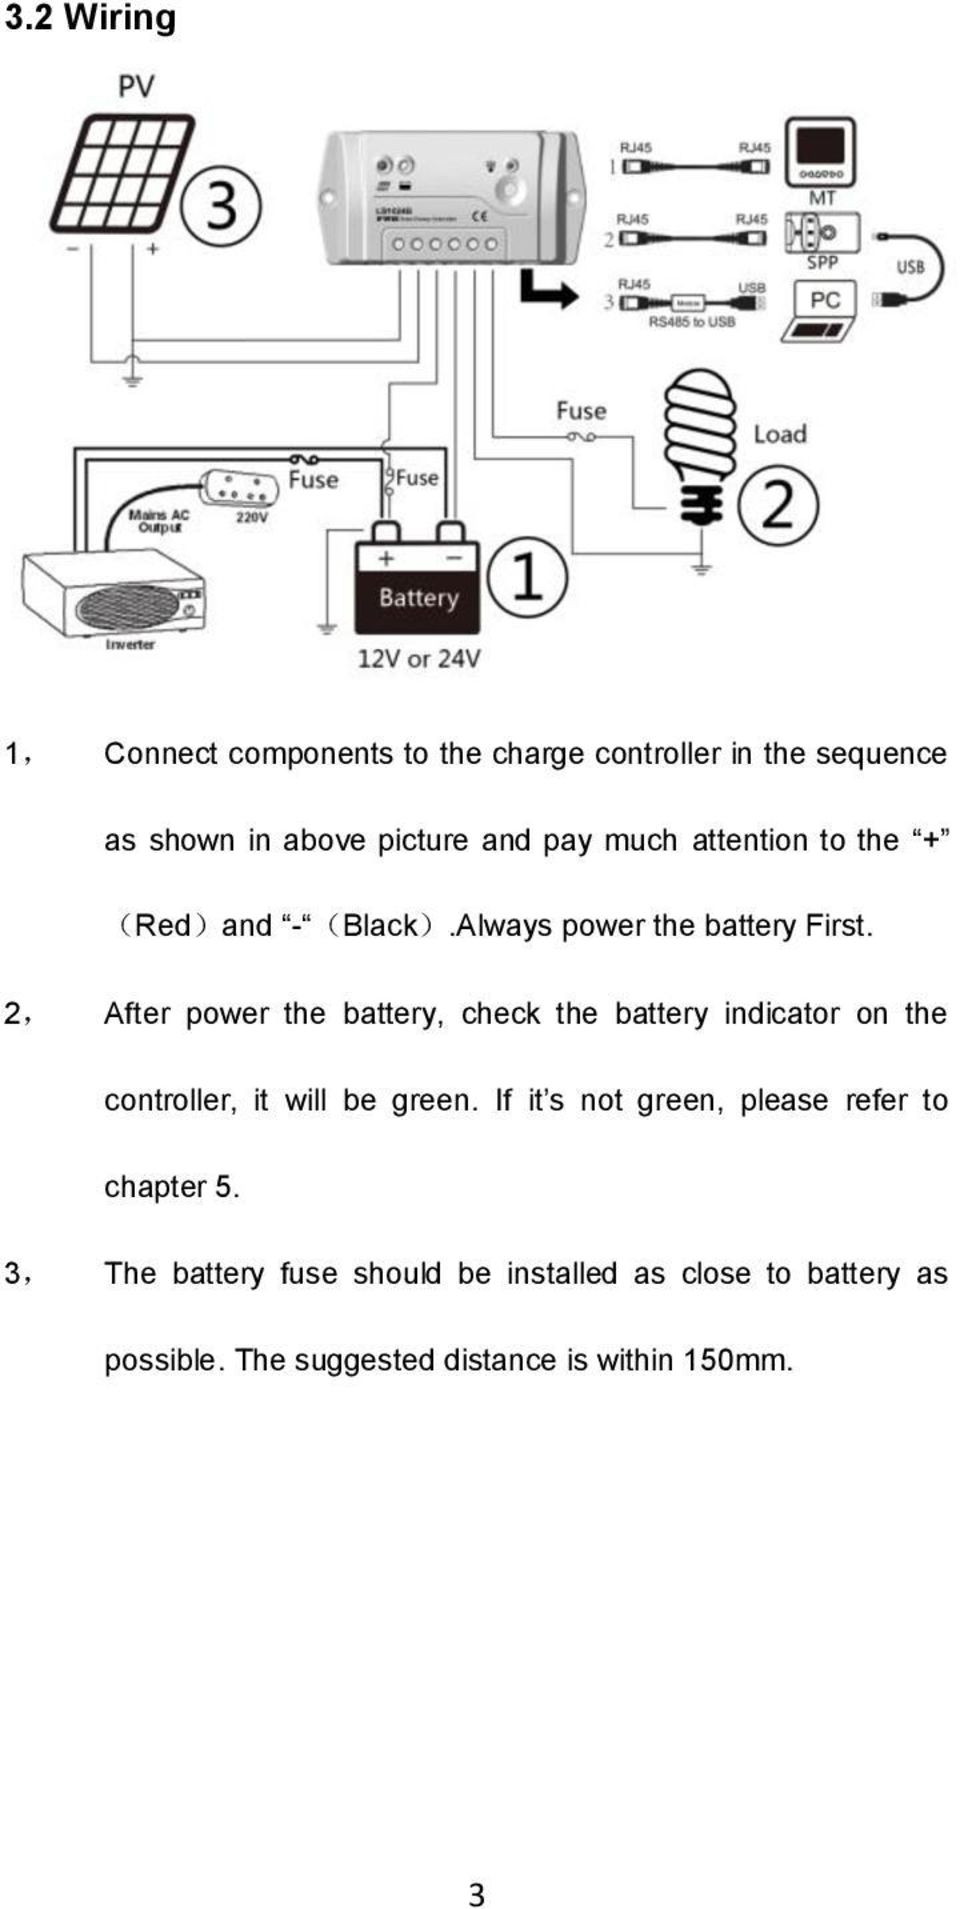 2, After power the battery, check the battery indicator on the controller, it will be green.